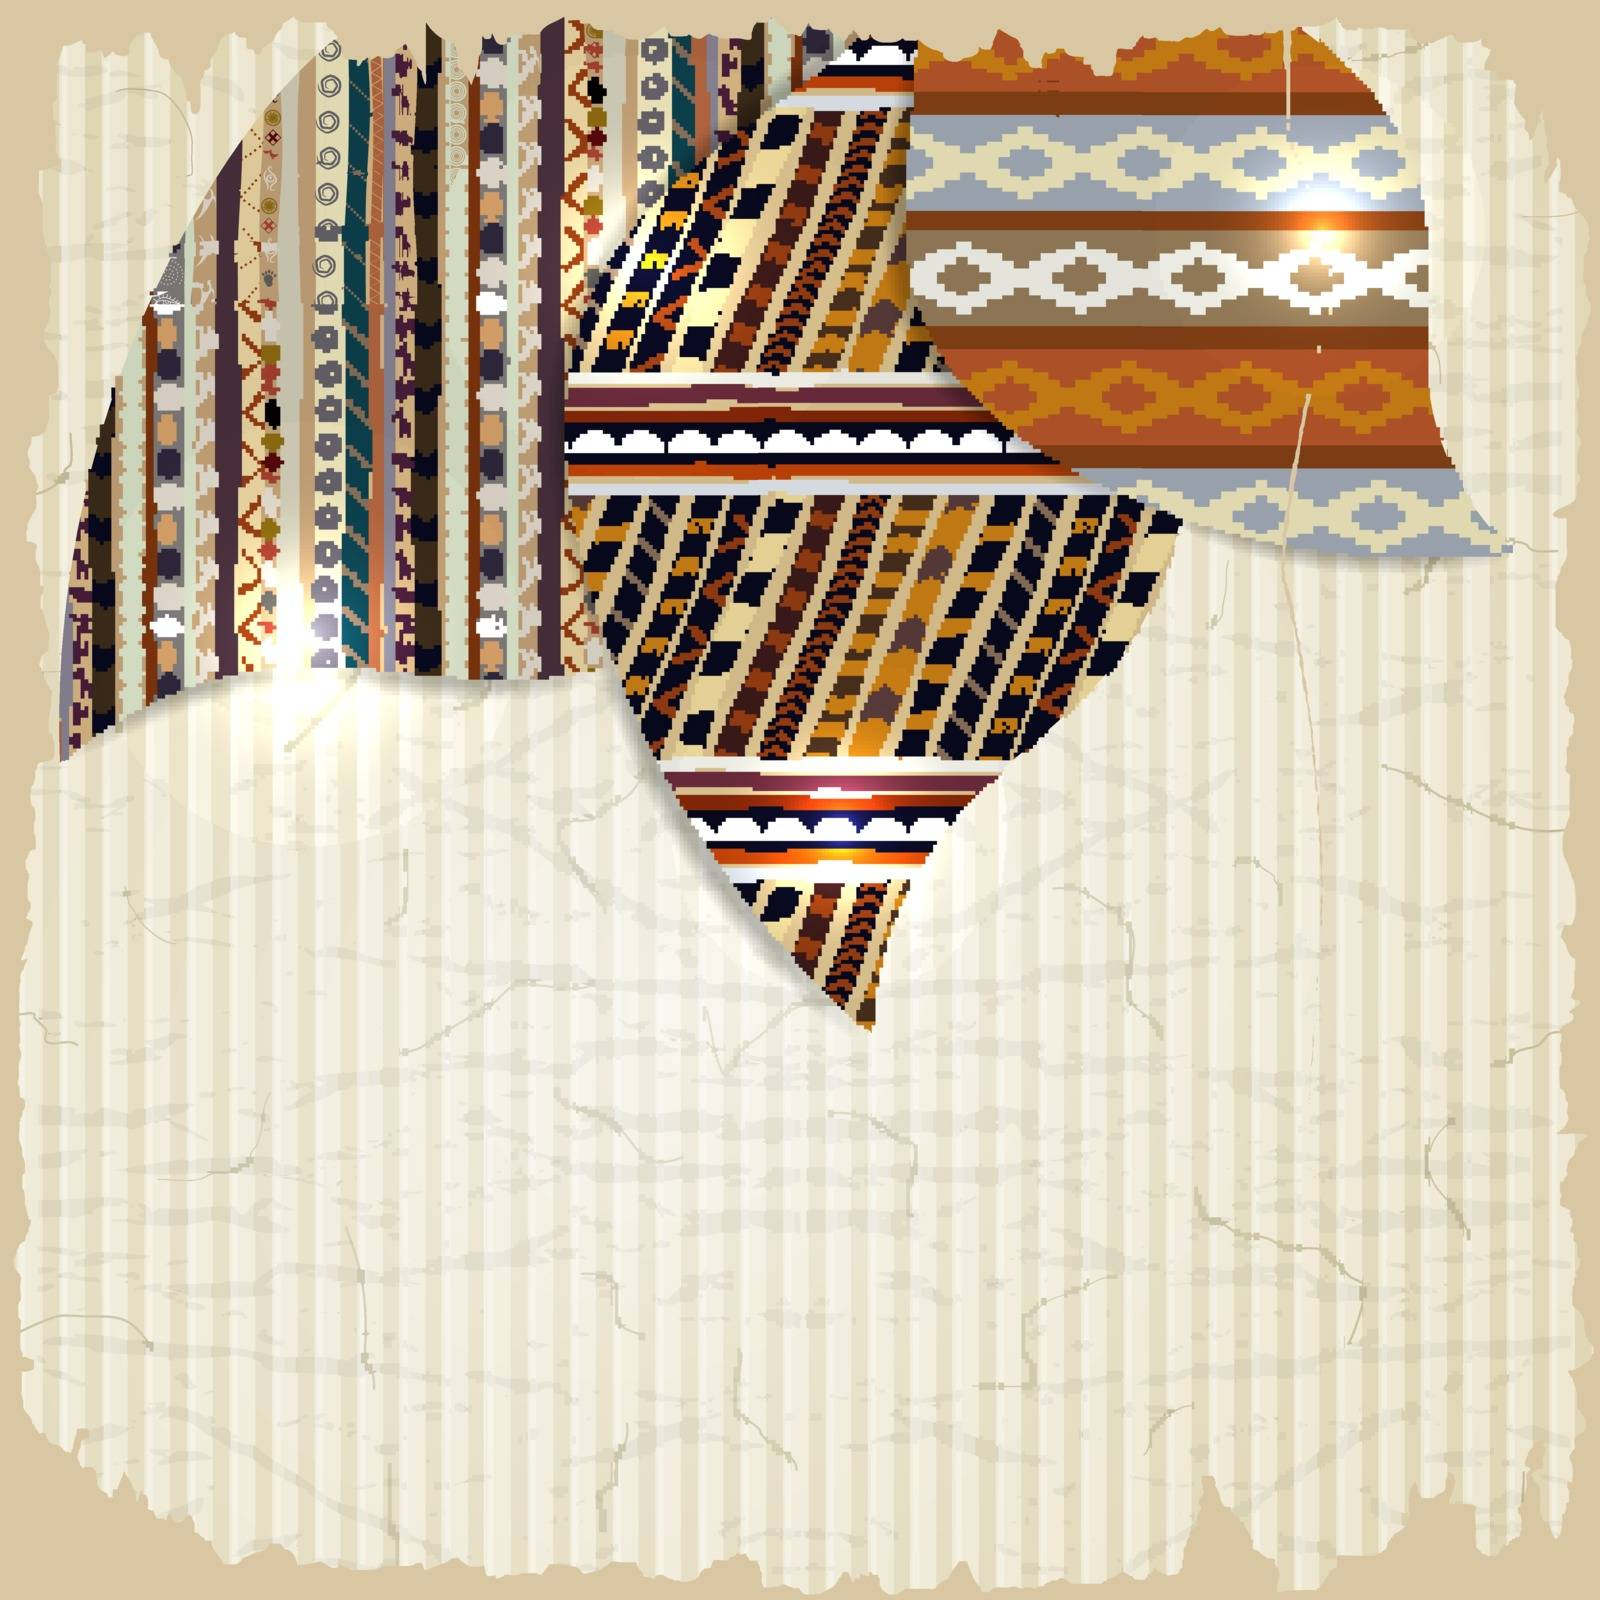 Vintage background with African paintings and grunge